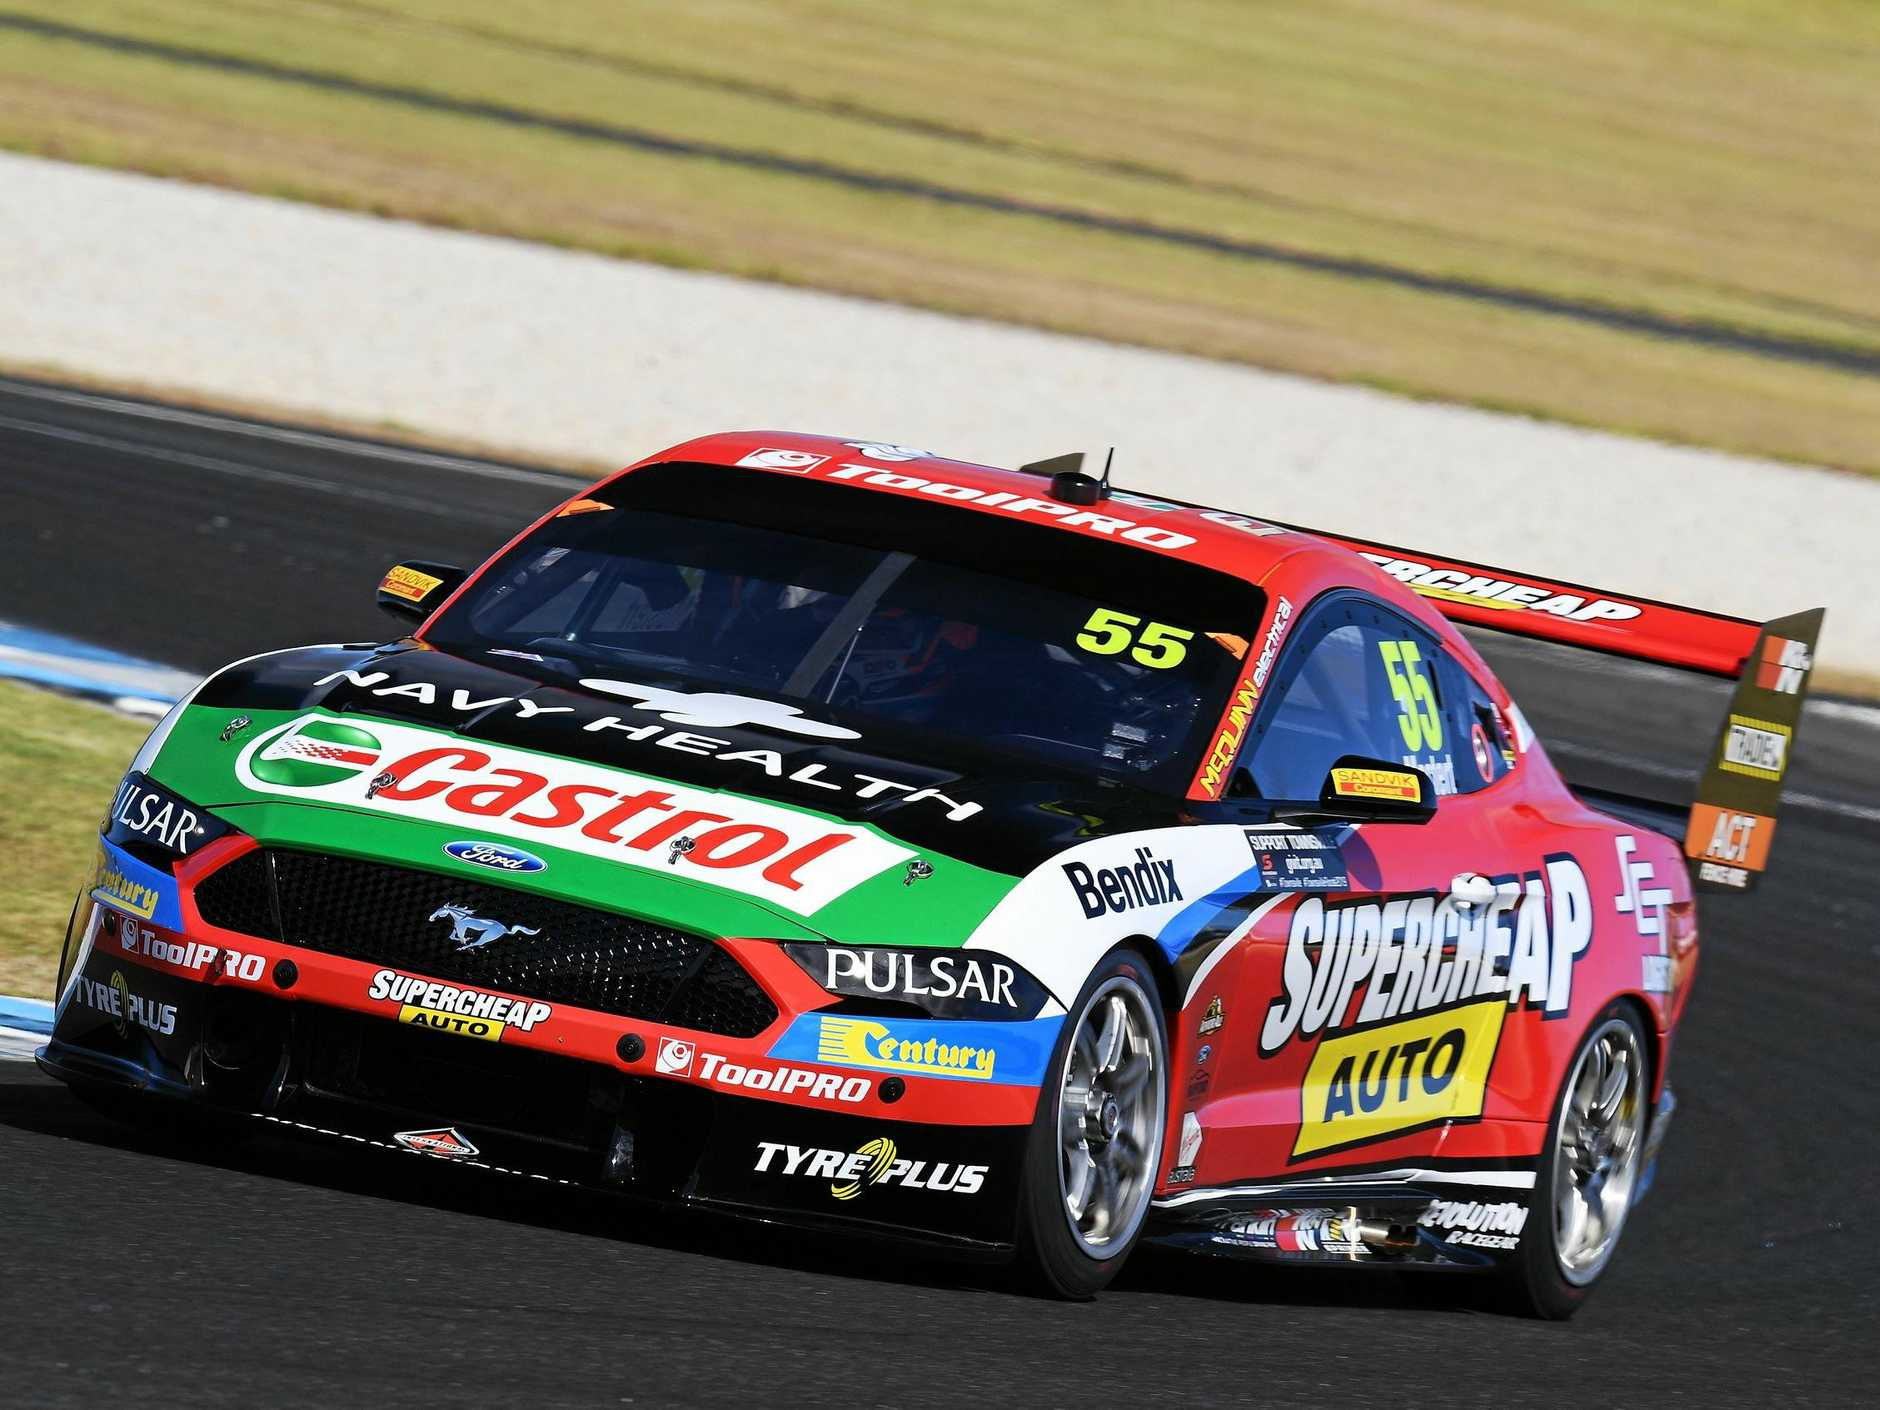 Chaz Mostert was another Mustang driver to impress at Albert Park.  Picture: Daniel Kalisz/Getty Images